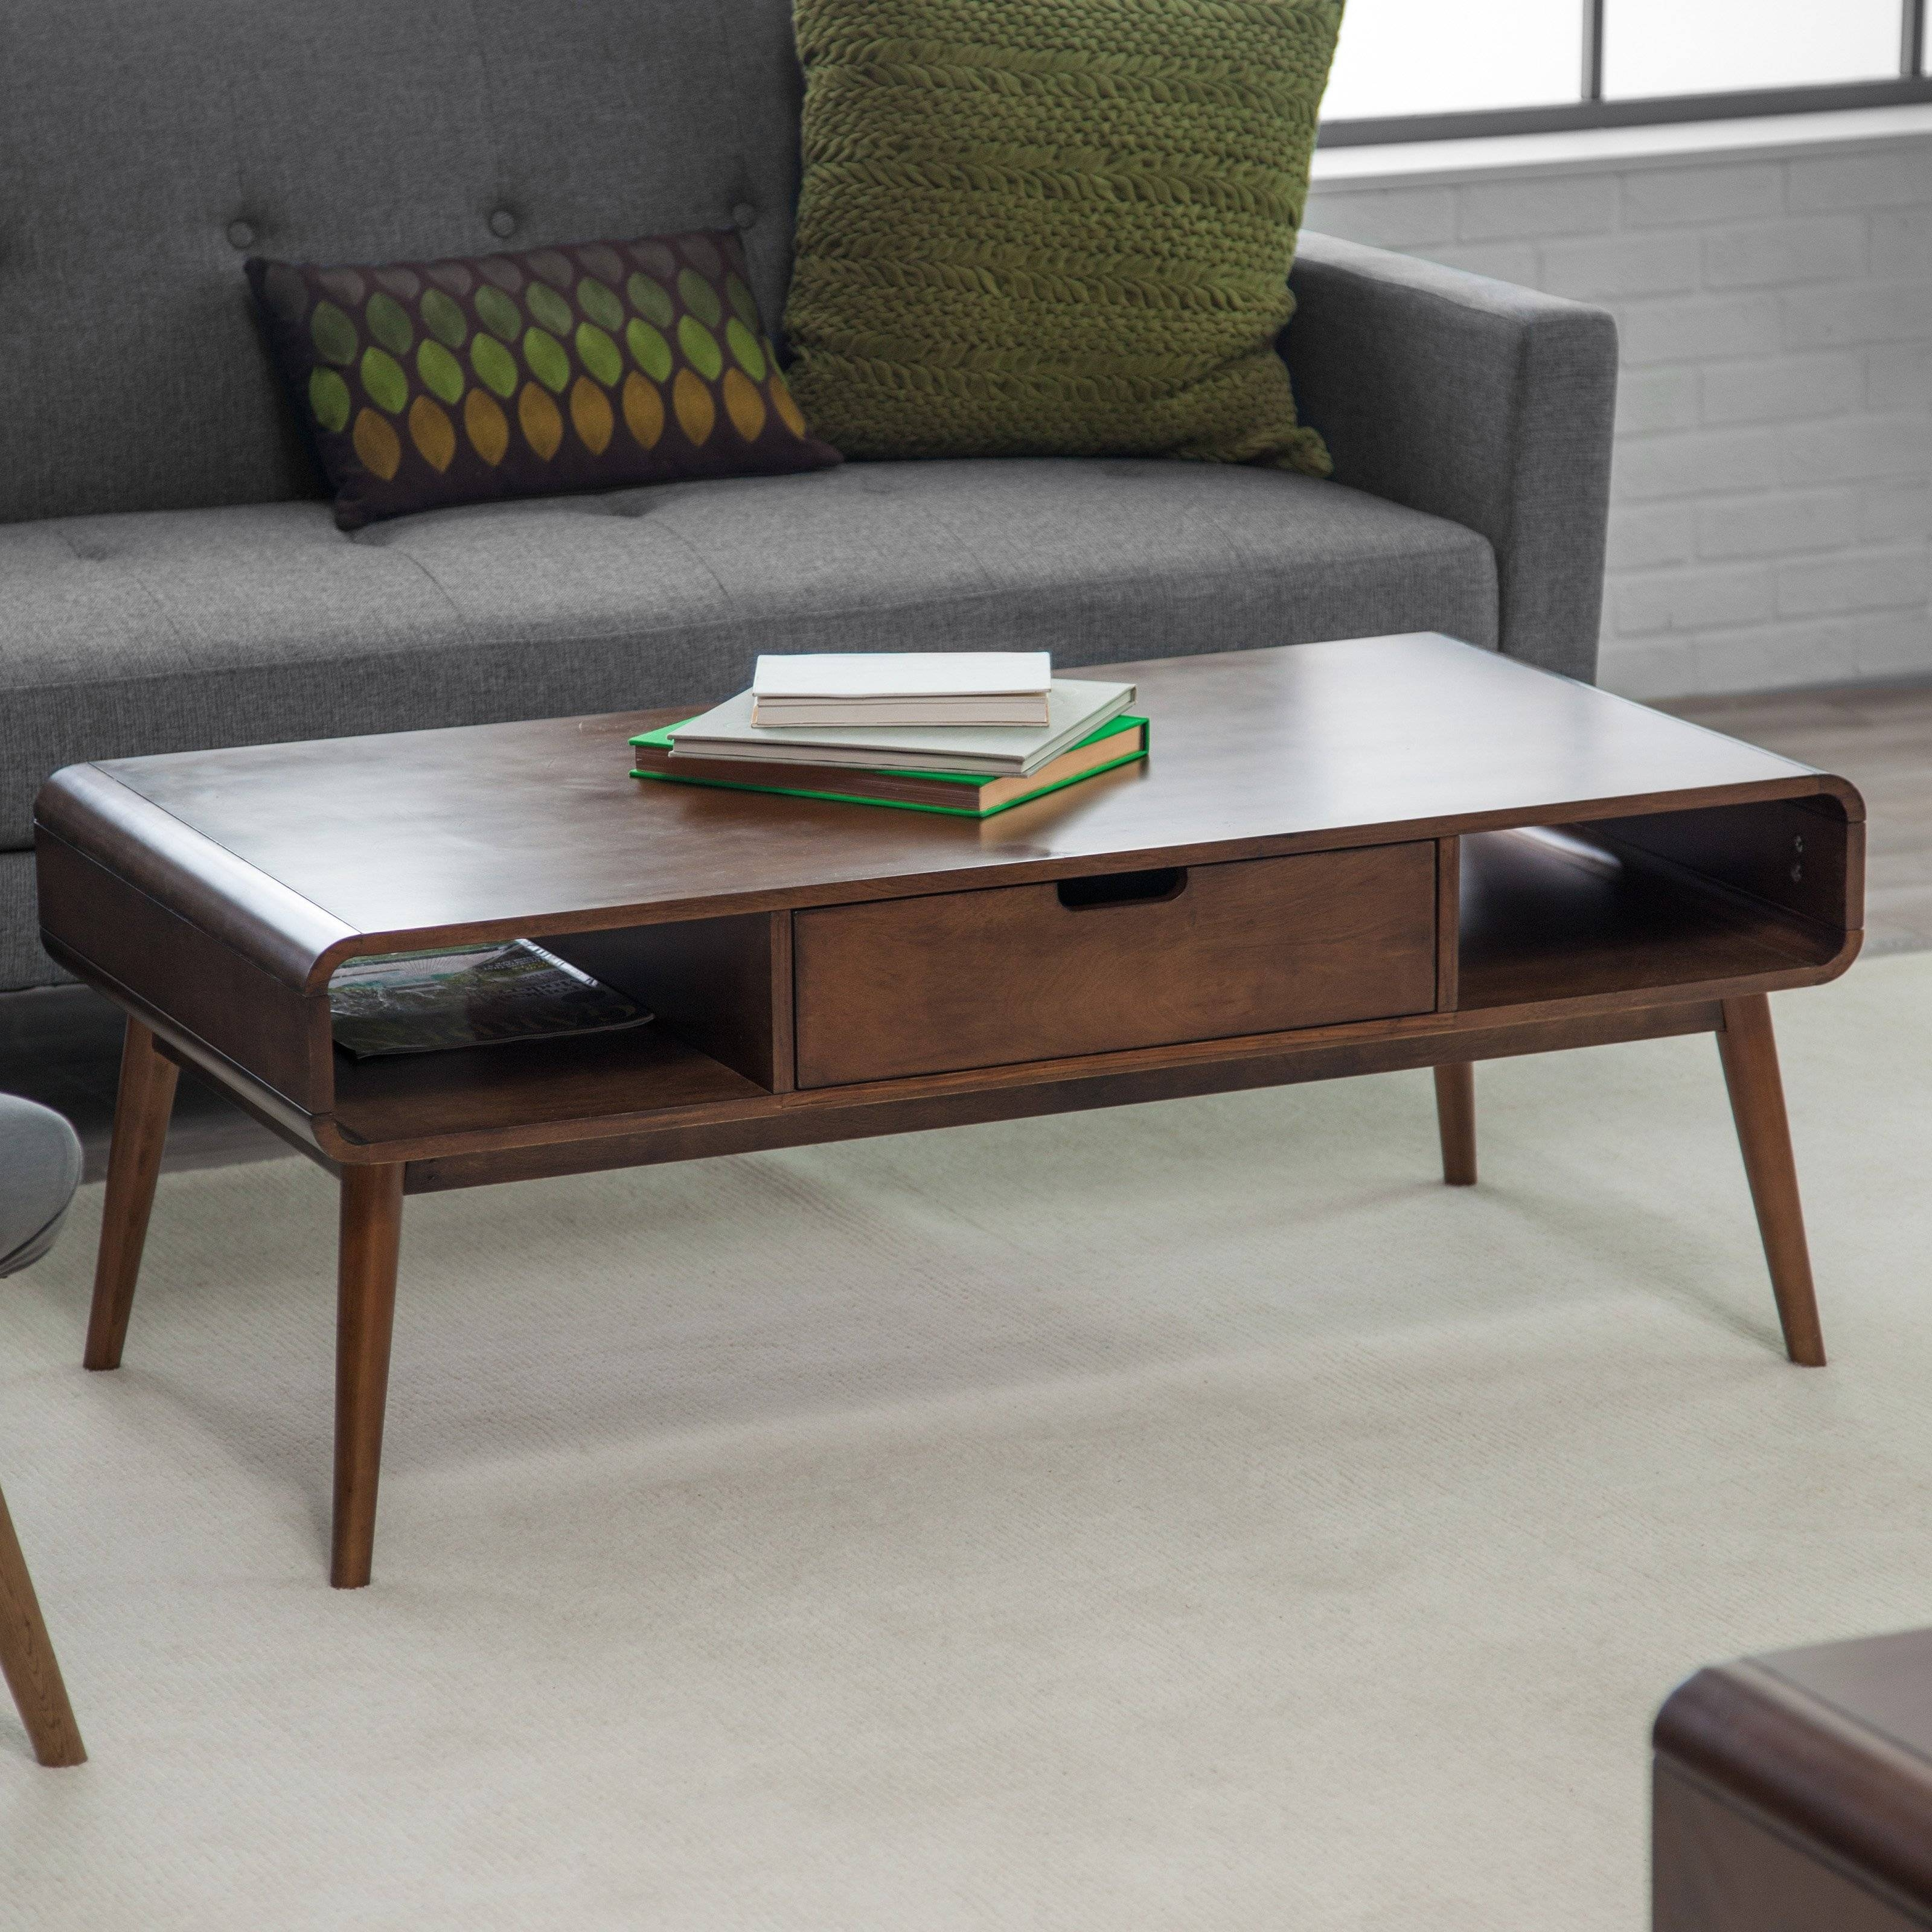 Belham Living Carter Mid Century Modern Coffee Table | Hayneedle for Modern Coffee Table (Image 2 of 15)